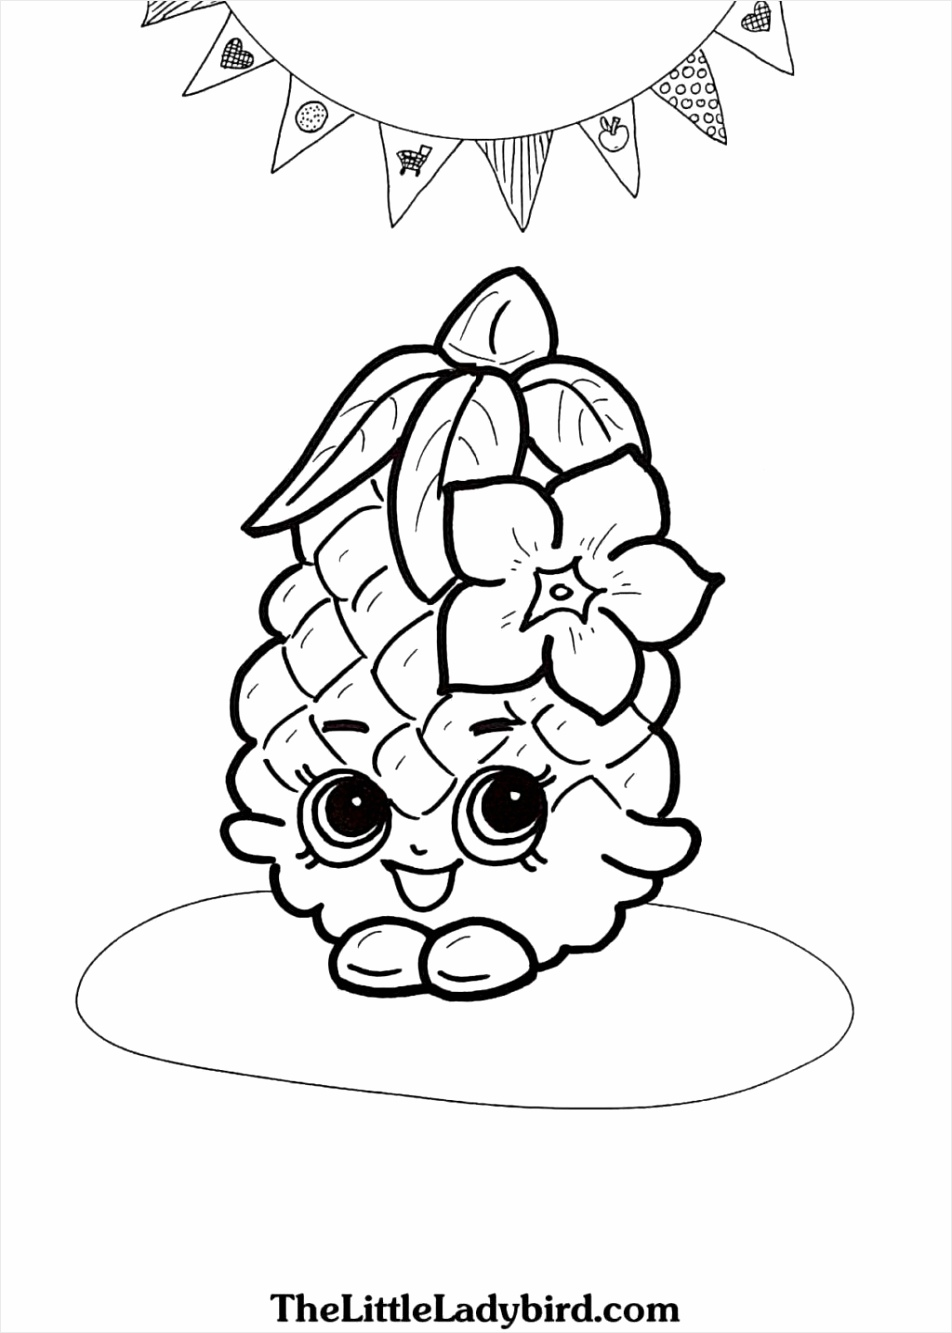 coloring book info remarkable pages best of luxury easy disney photoshop background textures free easter 1024x1419 yruer